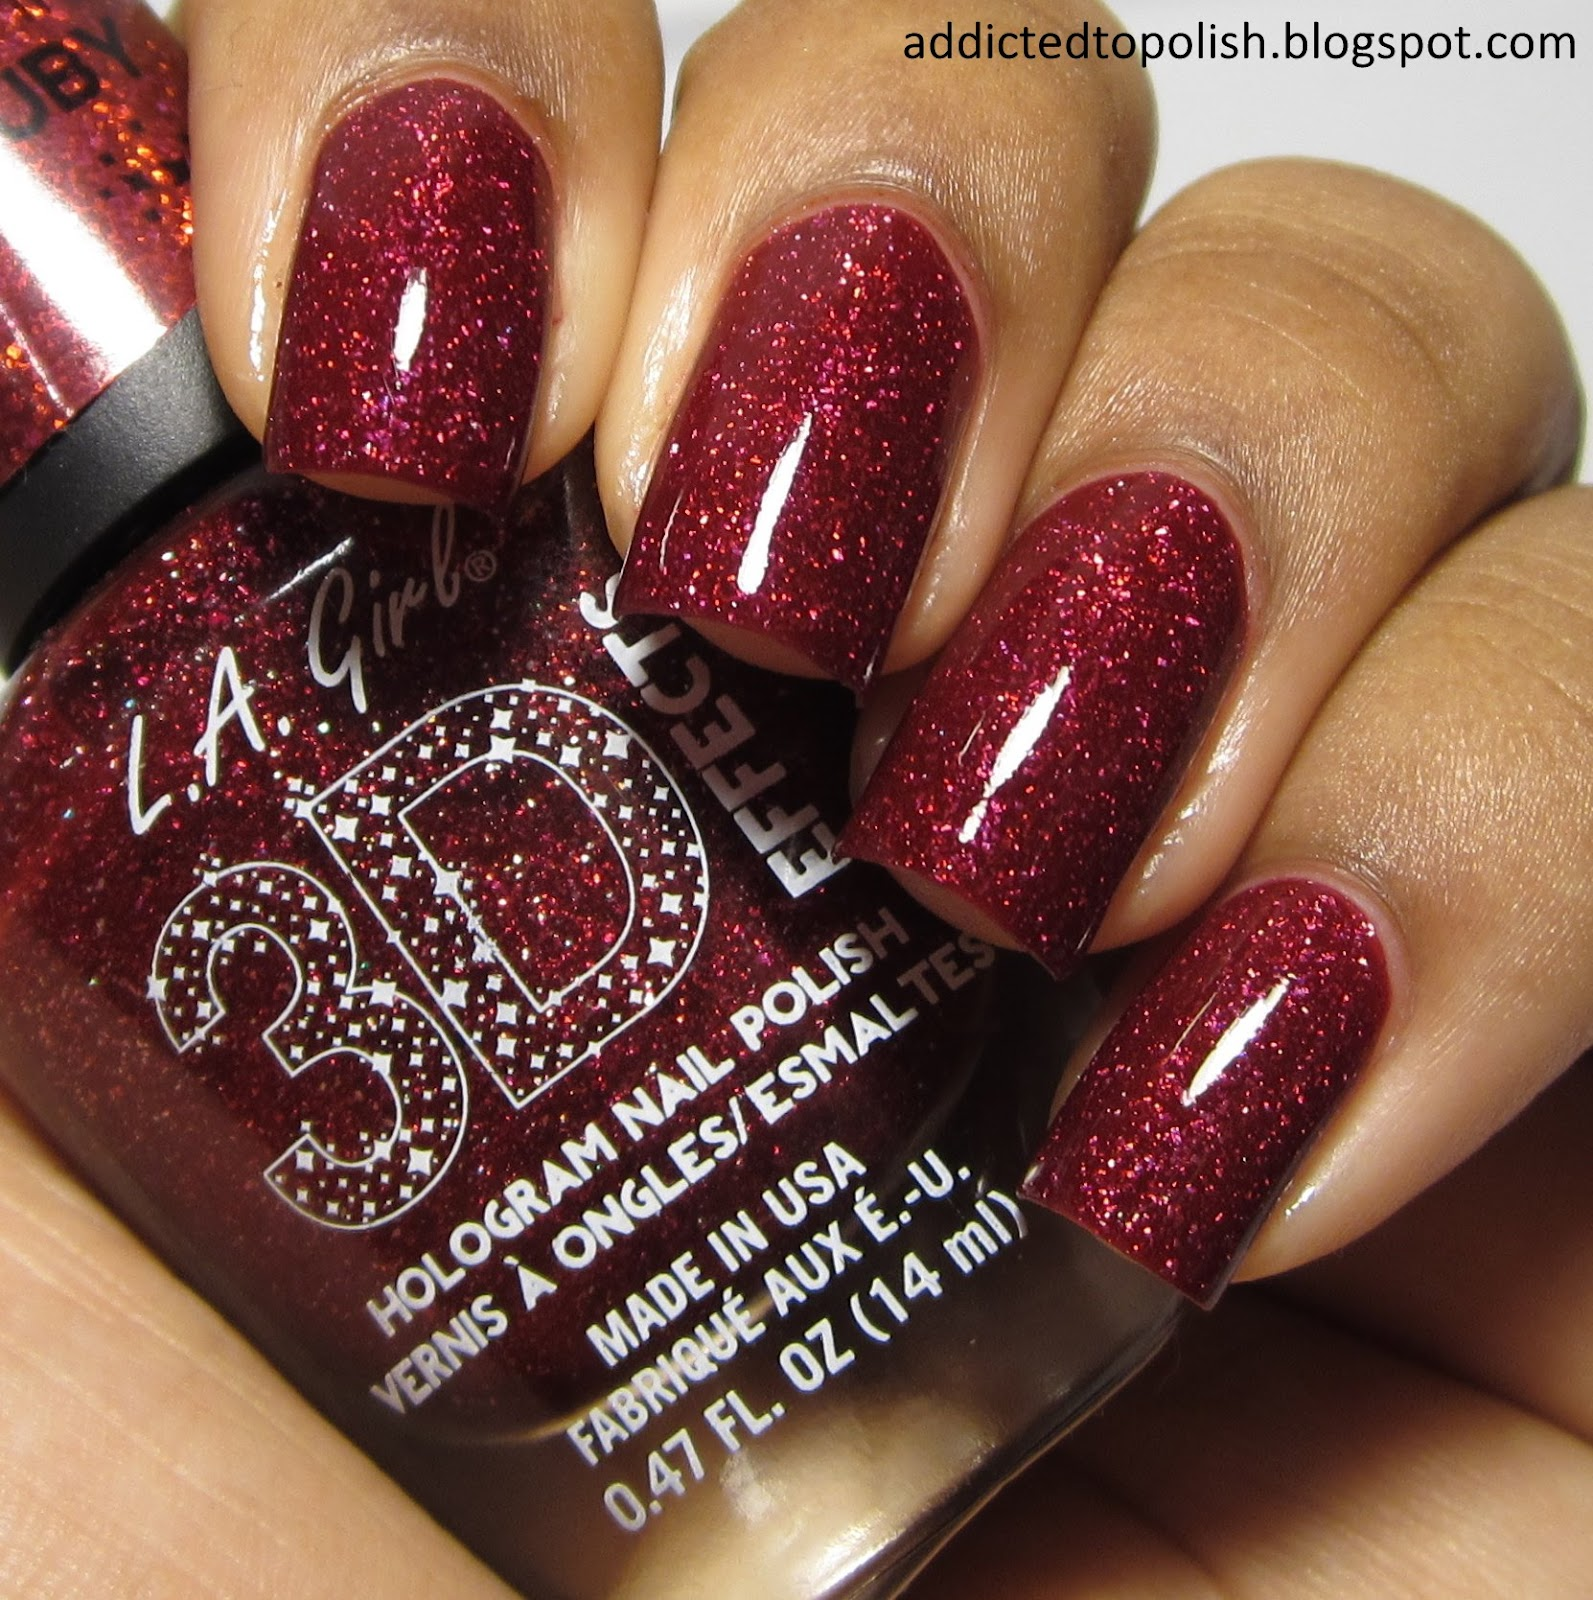 LA Girl 3D Effects Sparkle Ruby red holo nail polish swatch